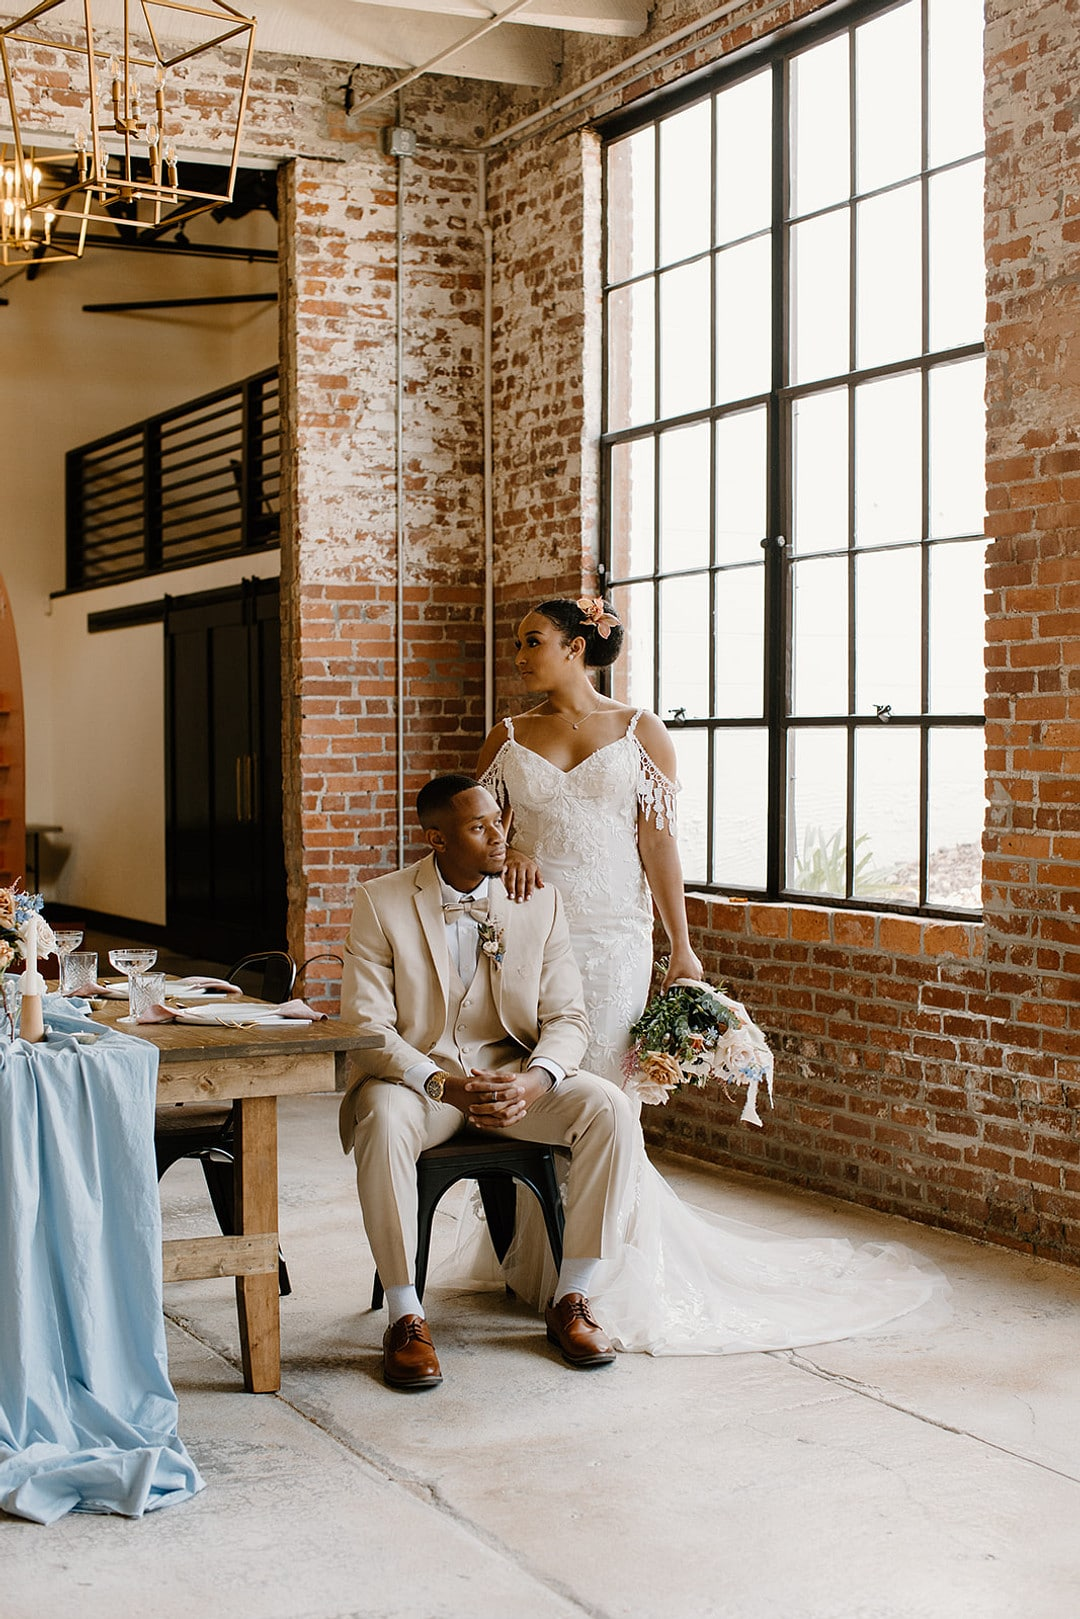 groom sitting down and bride standing behind him at their reception table.